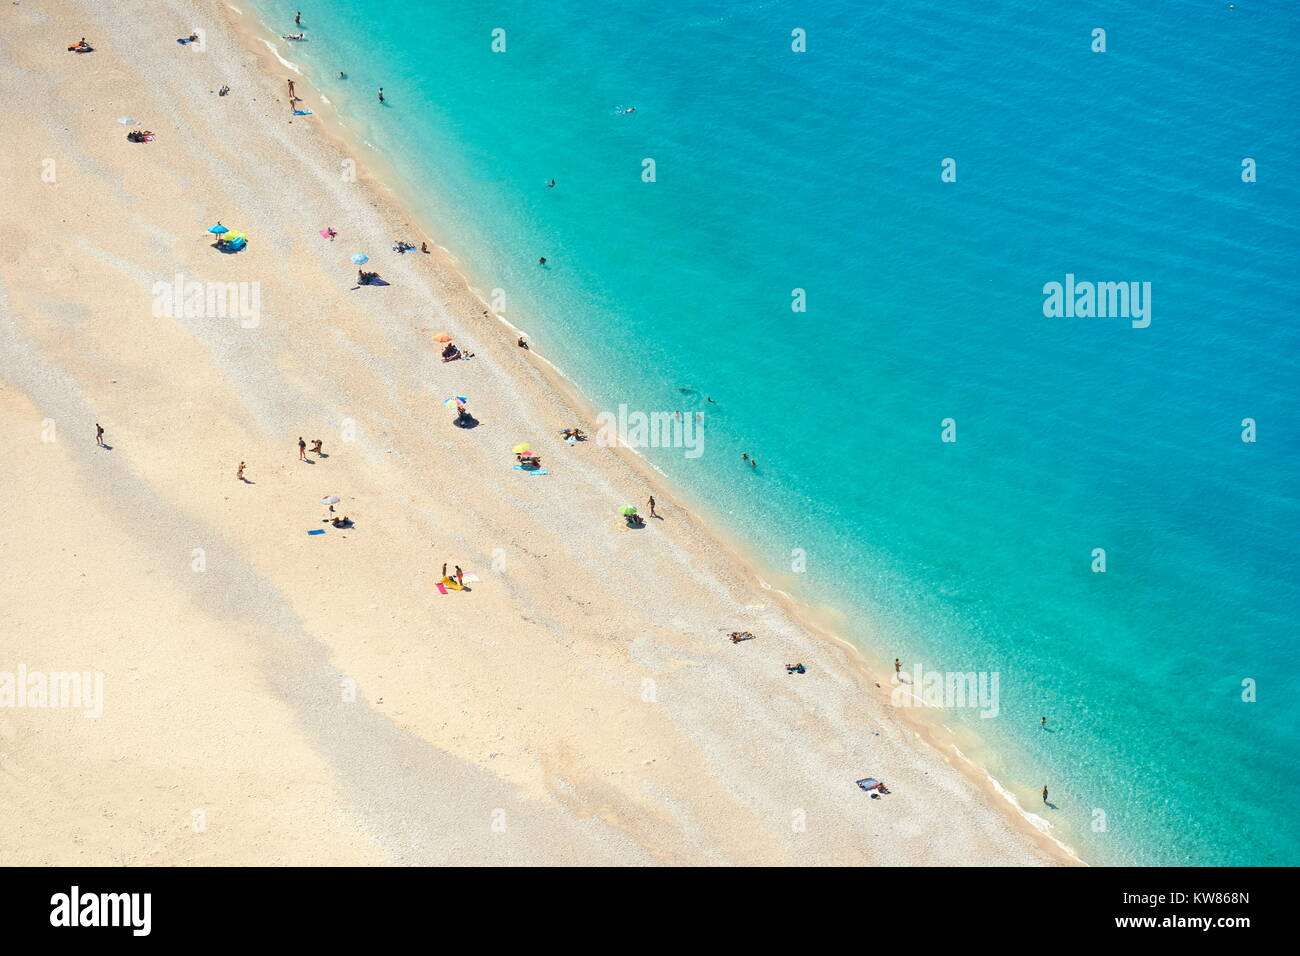 Turquoise water at Myrtos Beach, Kefalonia (Cephalonia), Greek Ionian Islands, Greece - Stock Image